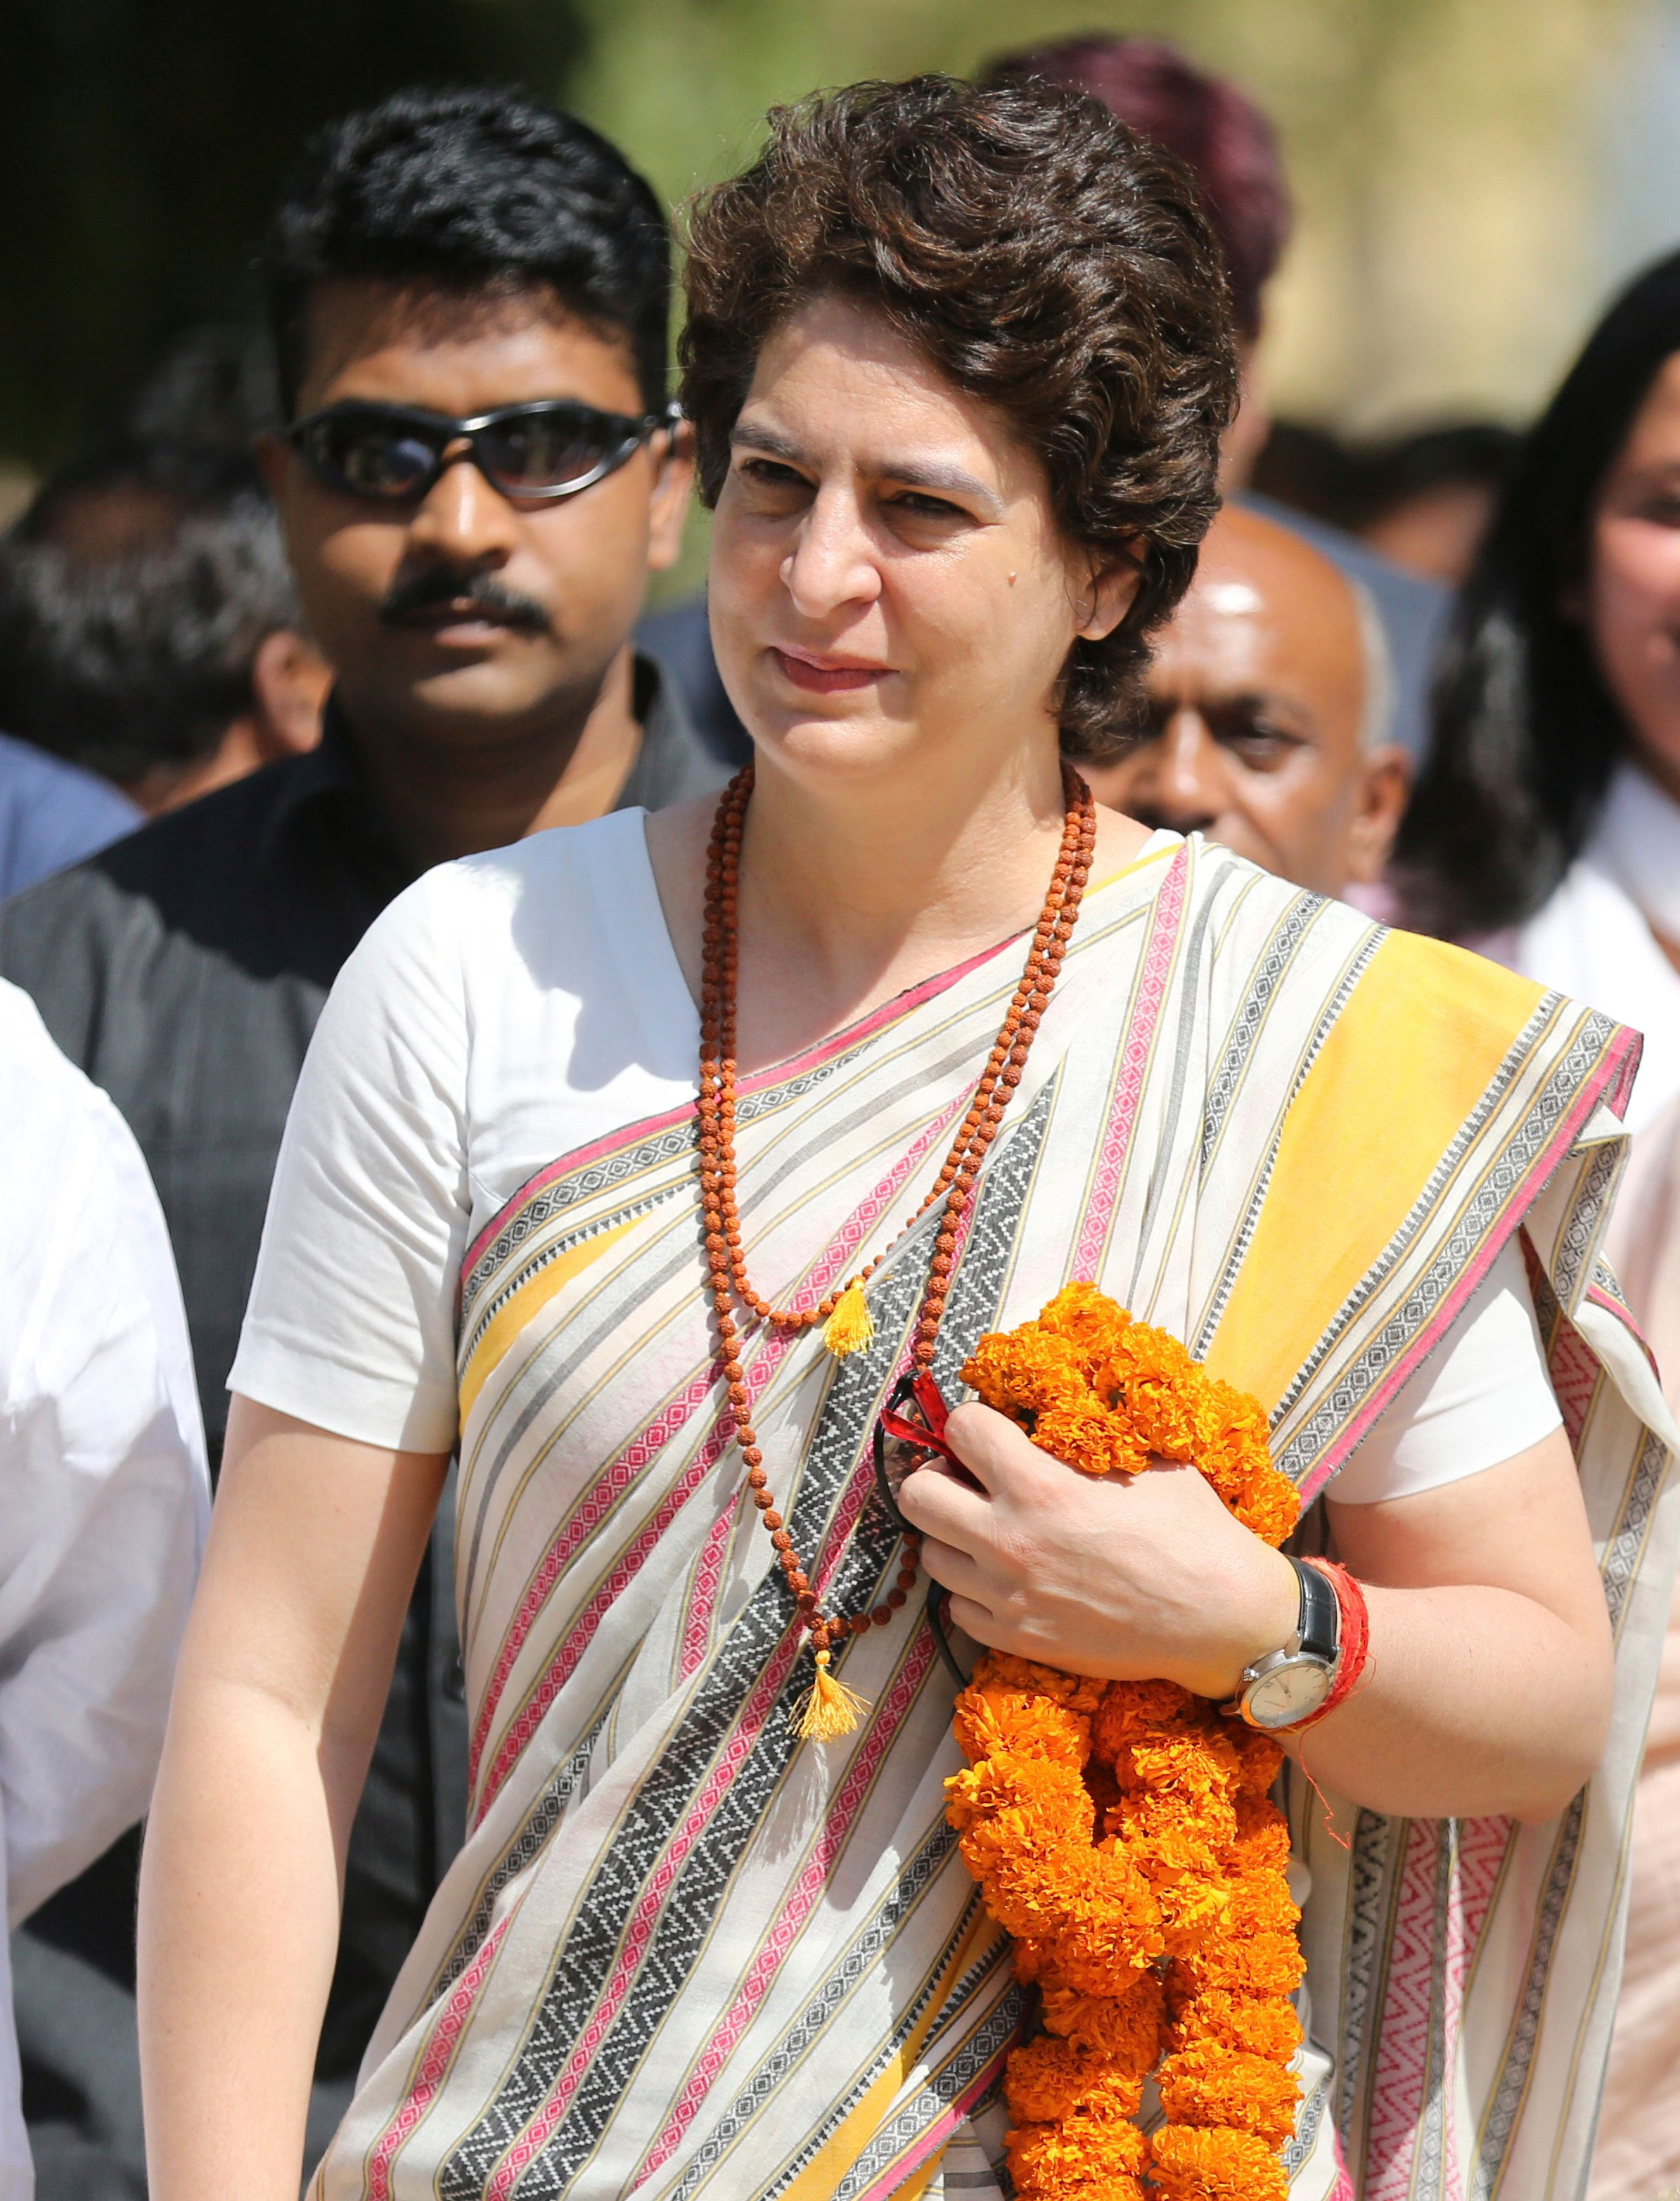 This BJP Minister Has An Opinion About Priyanka Gandhi's Nose, And It's Sexist And